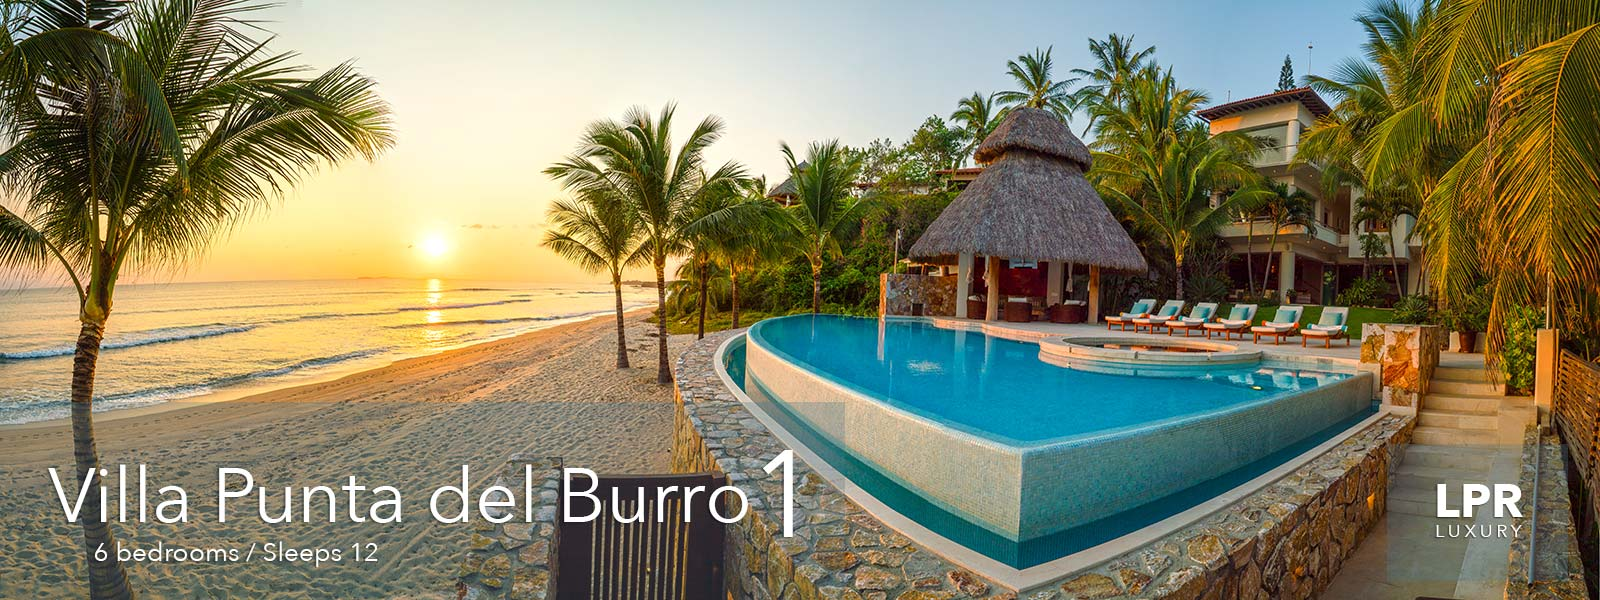 Villa Punta del Burro 1 - Luxury Punta de Mita Real Estate - Puerto Vallarta, Mexico